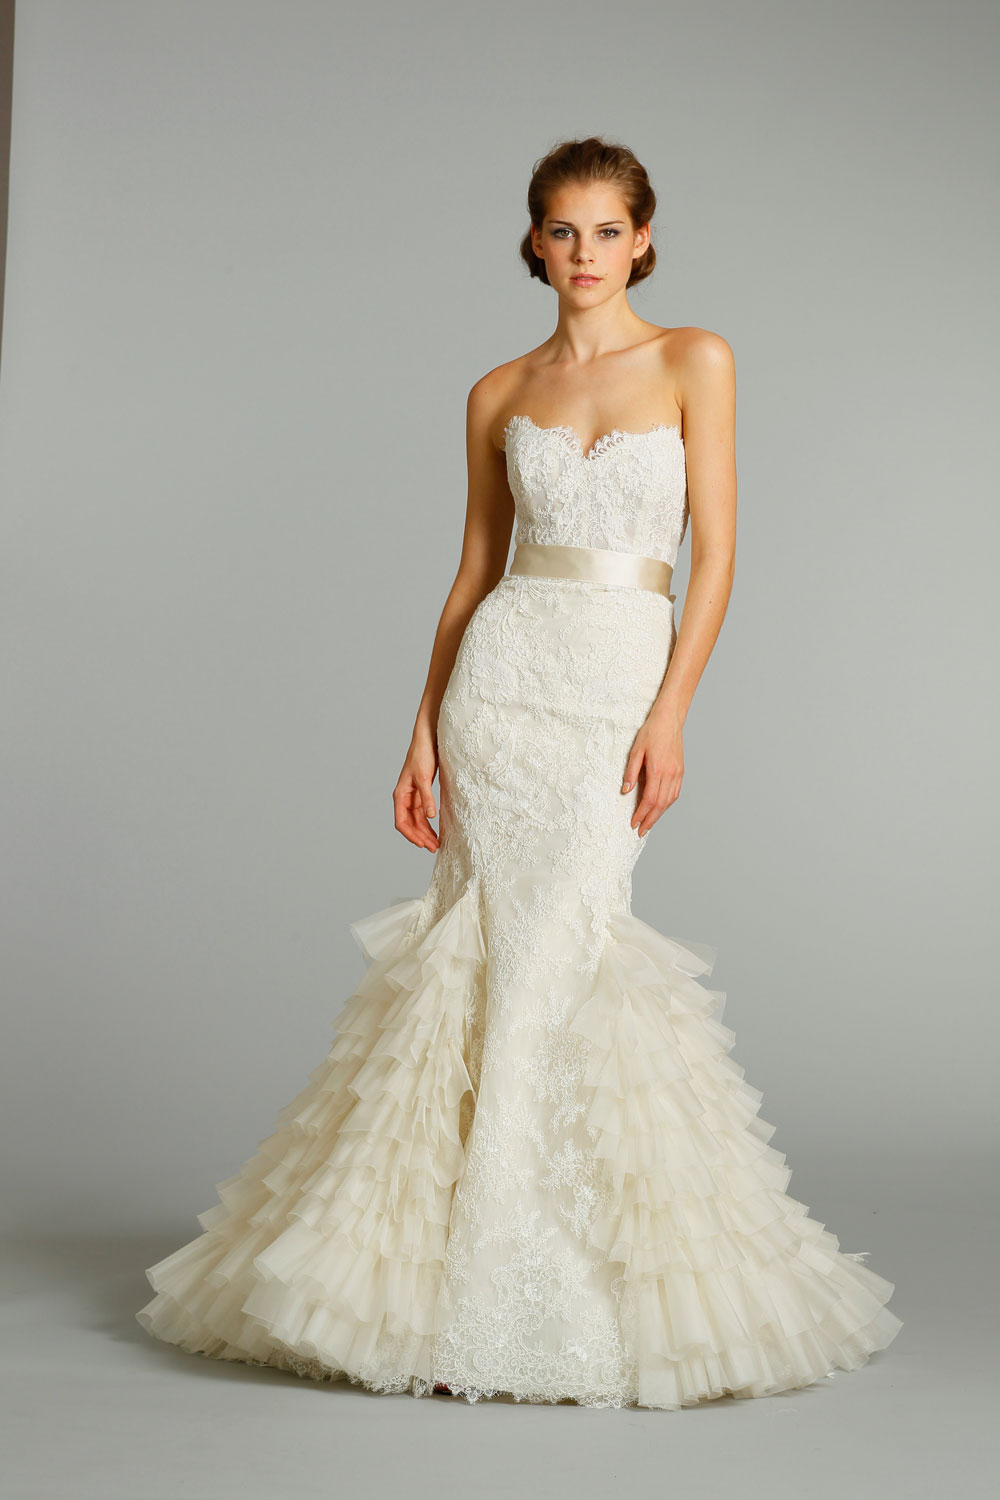 Fall-2012-wedding-dress-lazaro-bridal-gowns-3258-f.original